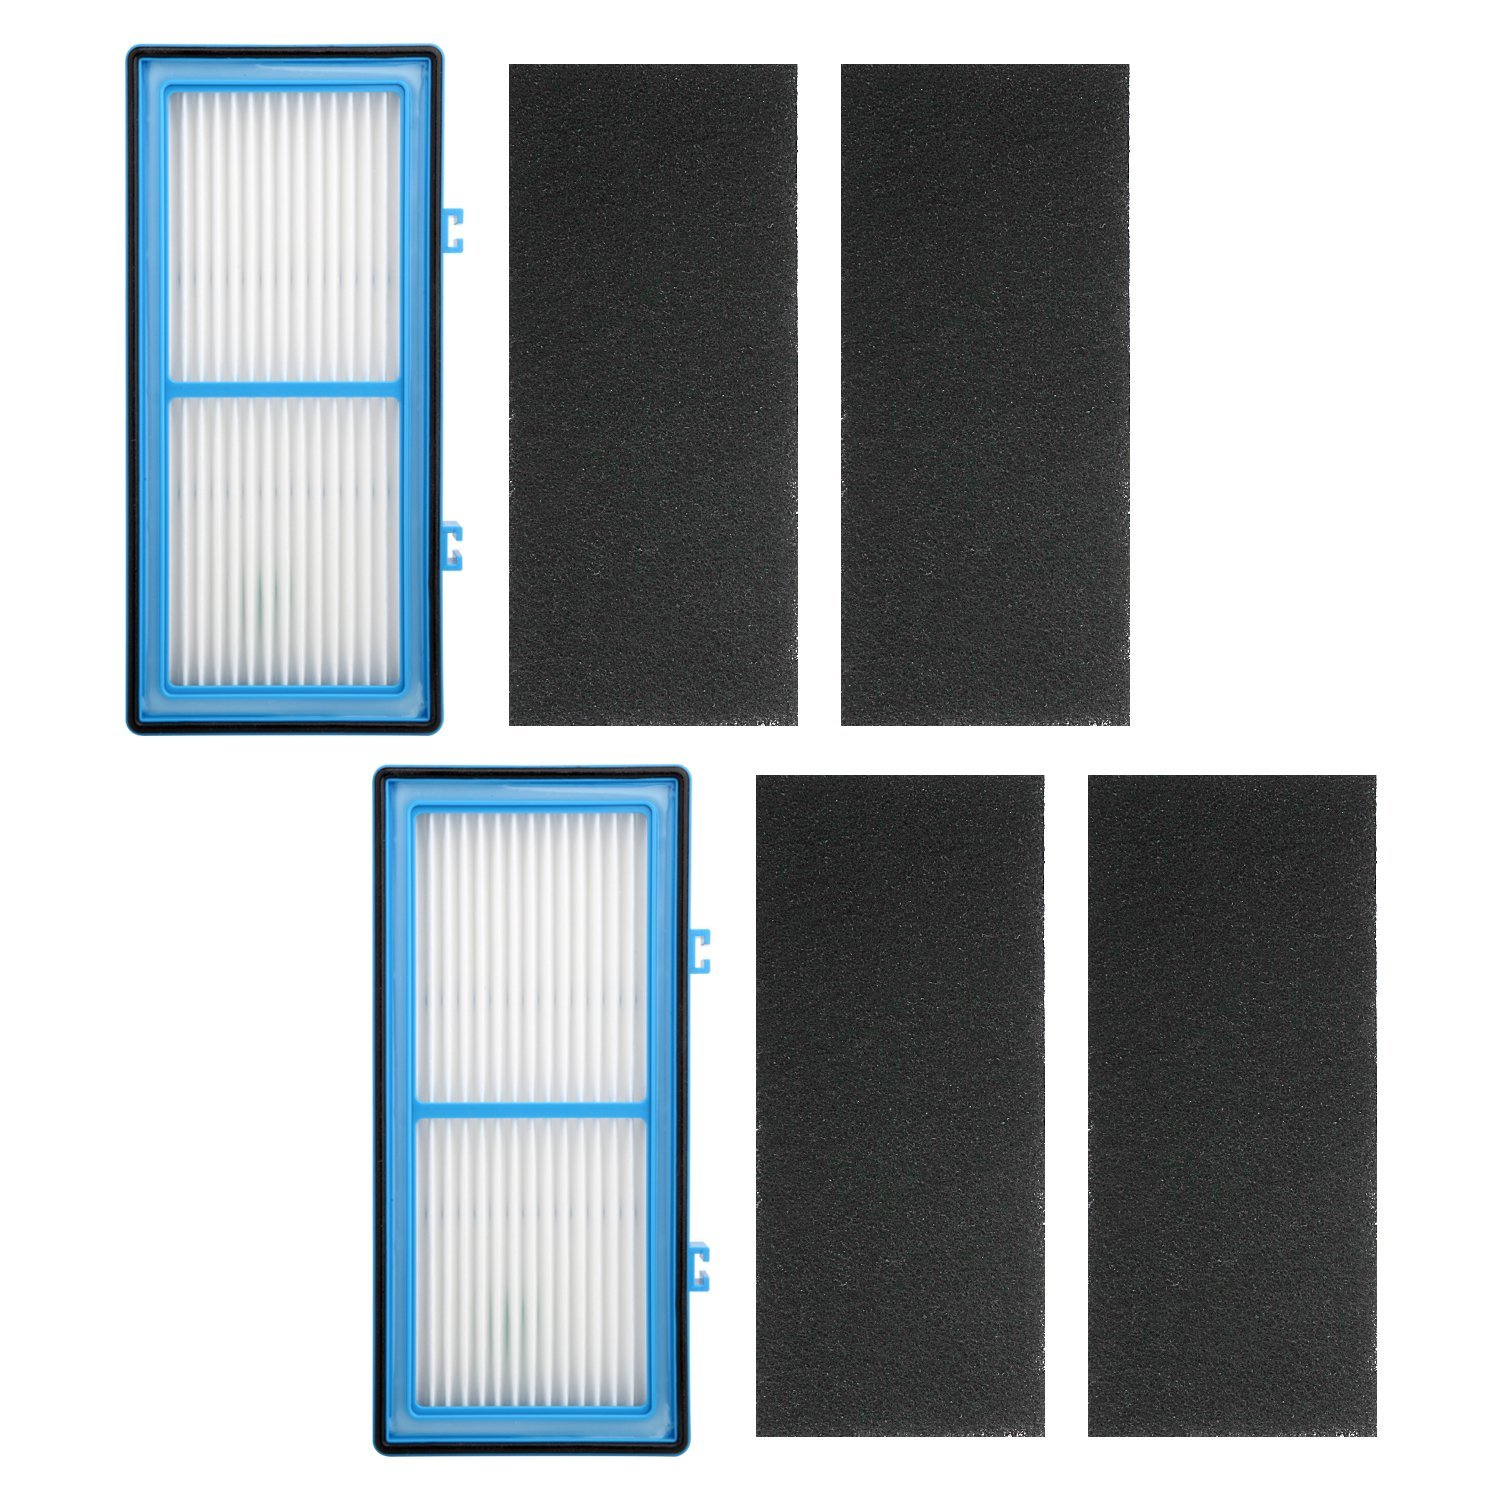 2 Pack Air Purifier Filters for Holmes AER1 HEPA Type Total Air Filter, HAPF30AT for Holmes HAP242-NUC Air Purifier Filter AER1 Series, Replace Type A Filter, 2 HEPA Filter + 4 Carbon Booster Filters